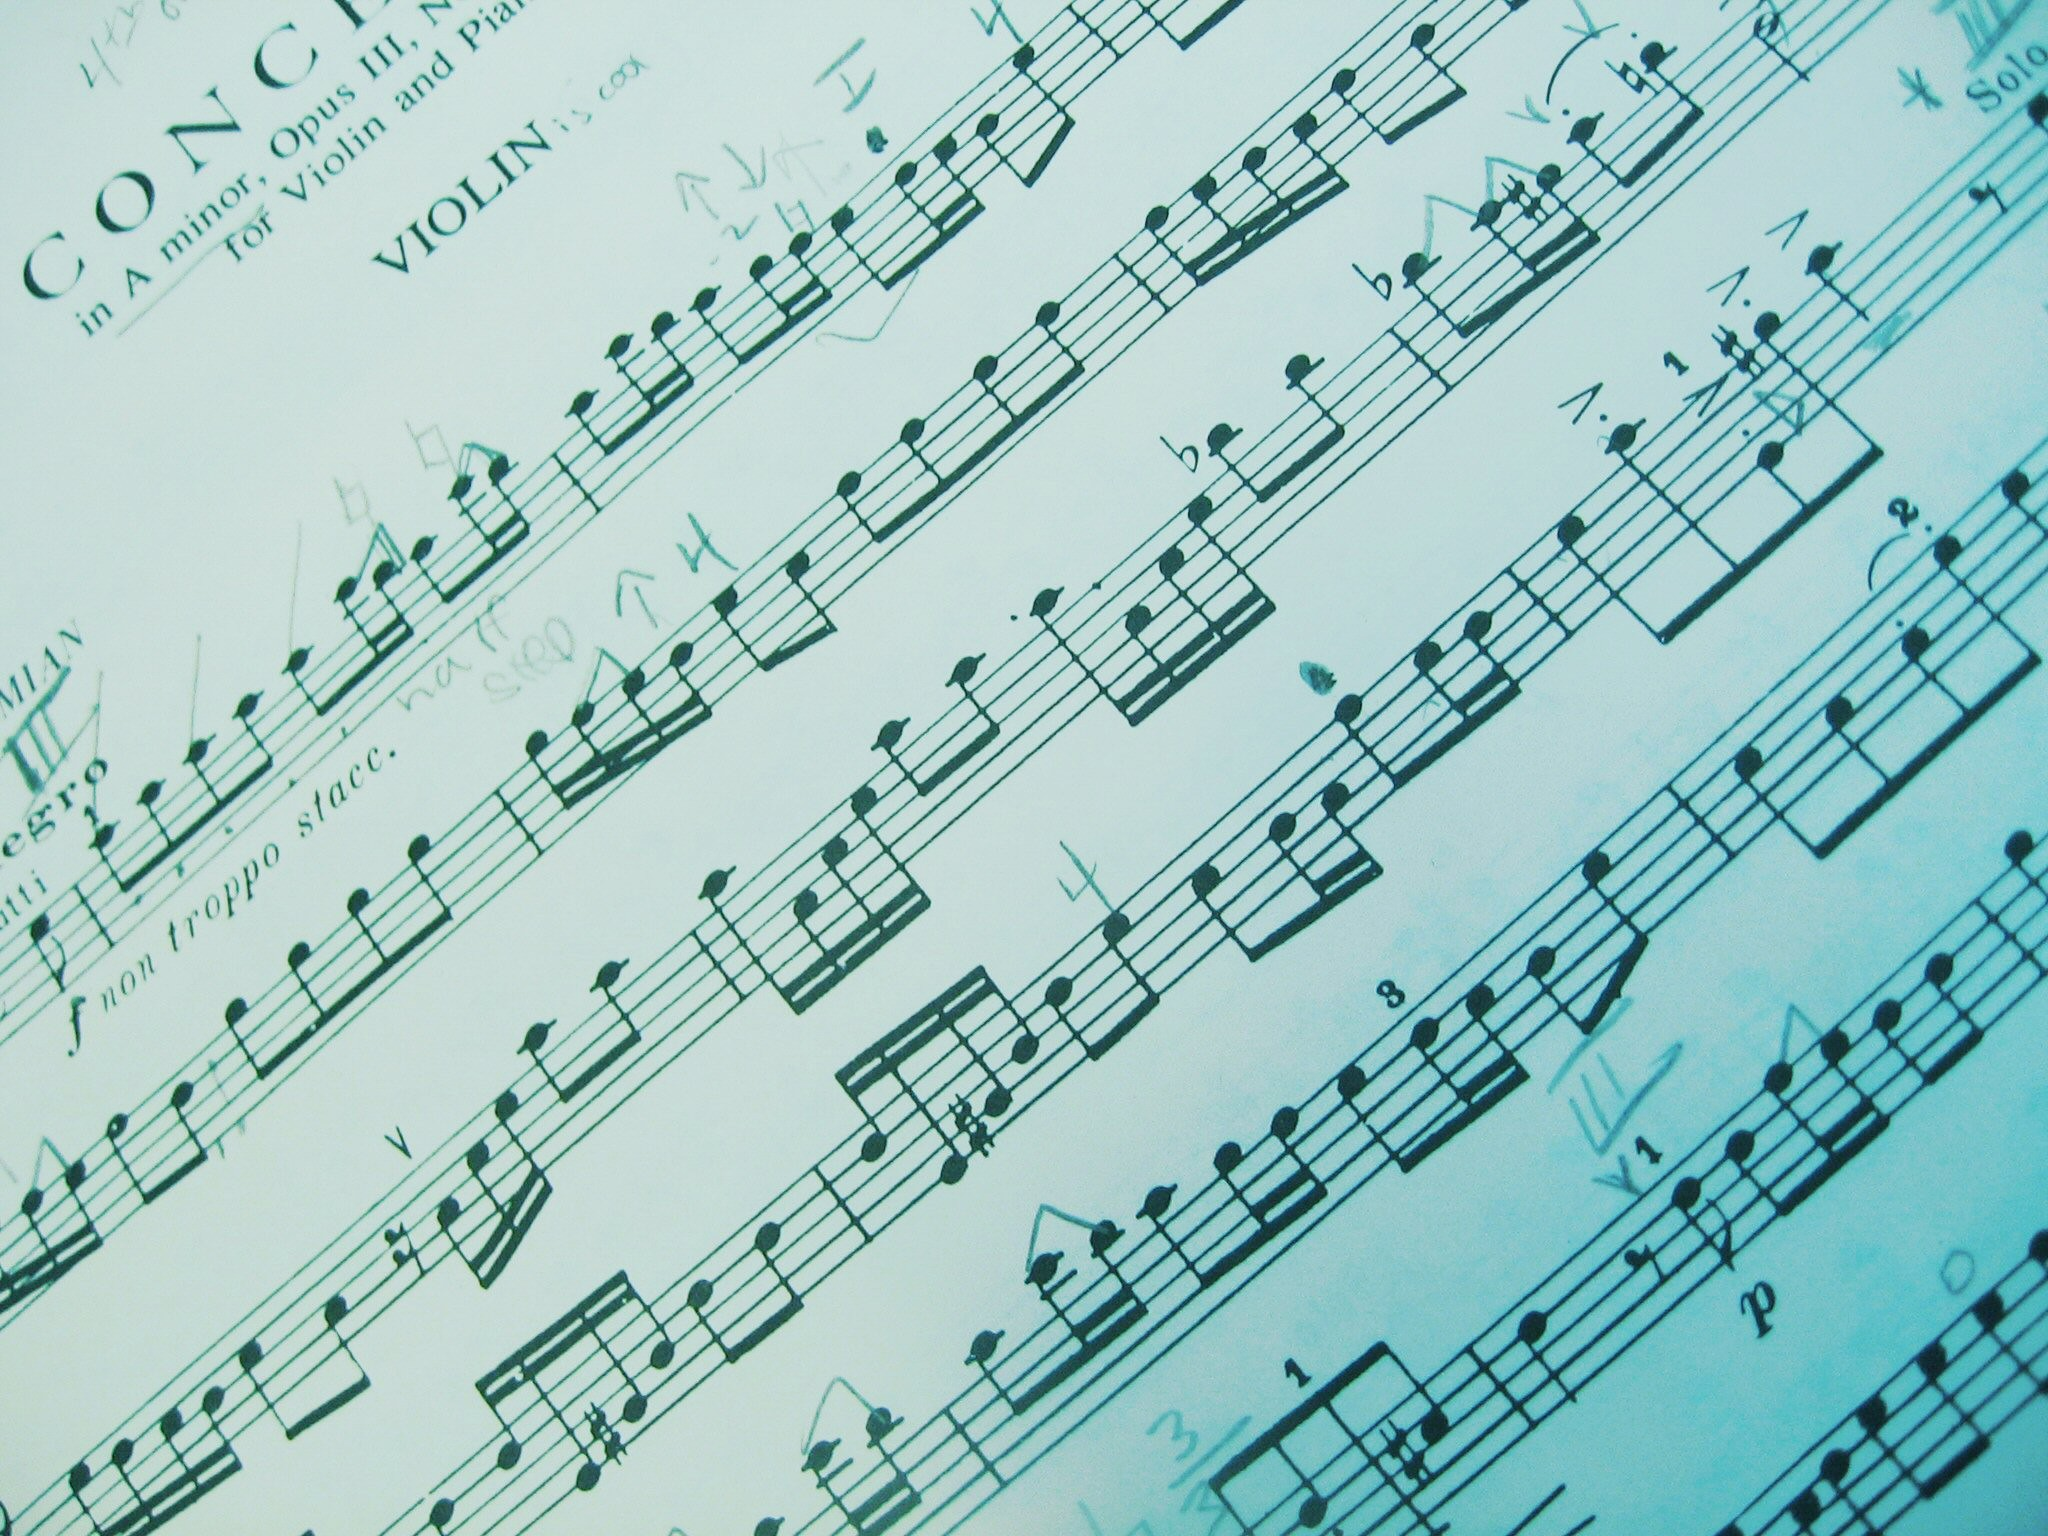 Sheet music background ·① Download free awesome full HD ...